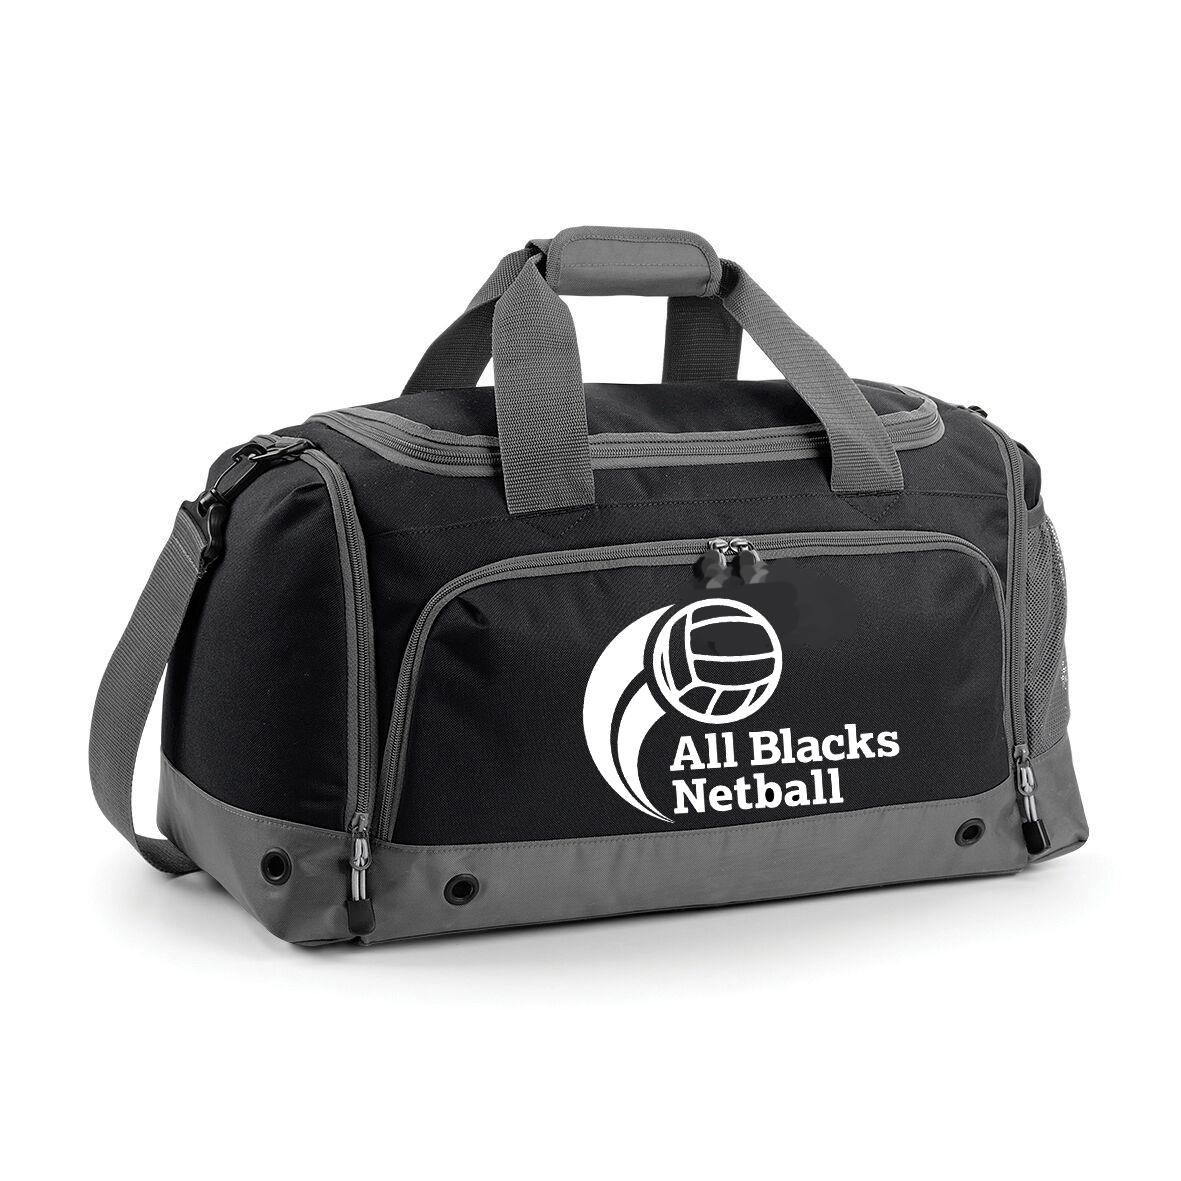 All Blacks Netball Kit Bag